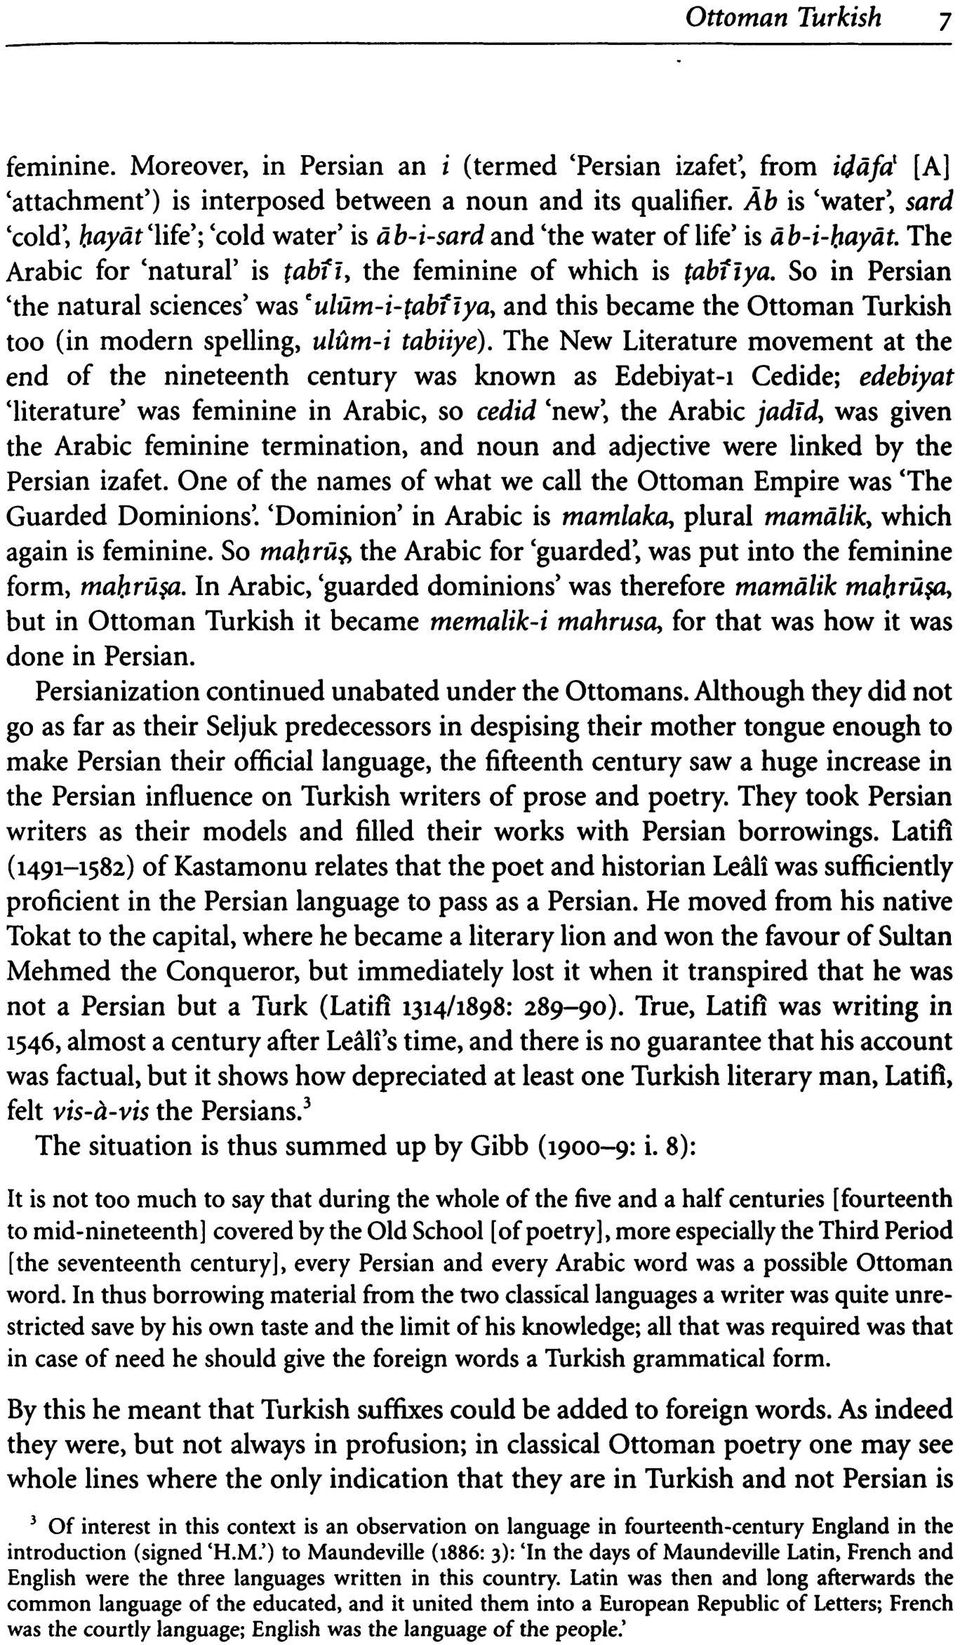 So in Persian 'the natural sciences' was e ulüm-i- tabiîya y and this became the Ottoman Turkish too (in modern spelling, ulûm-i tabiiye).